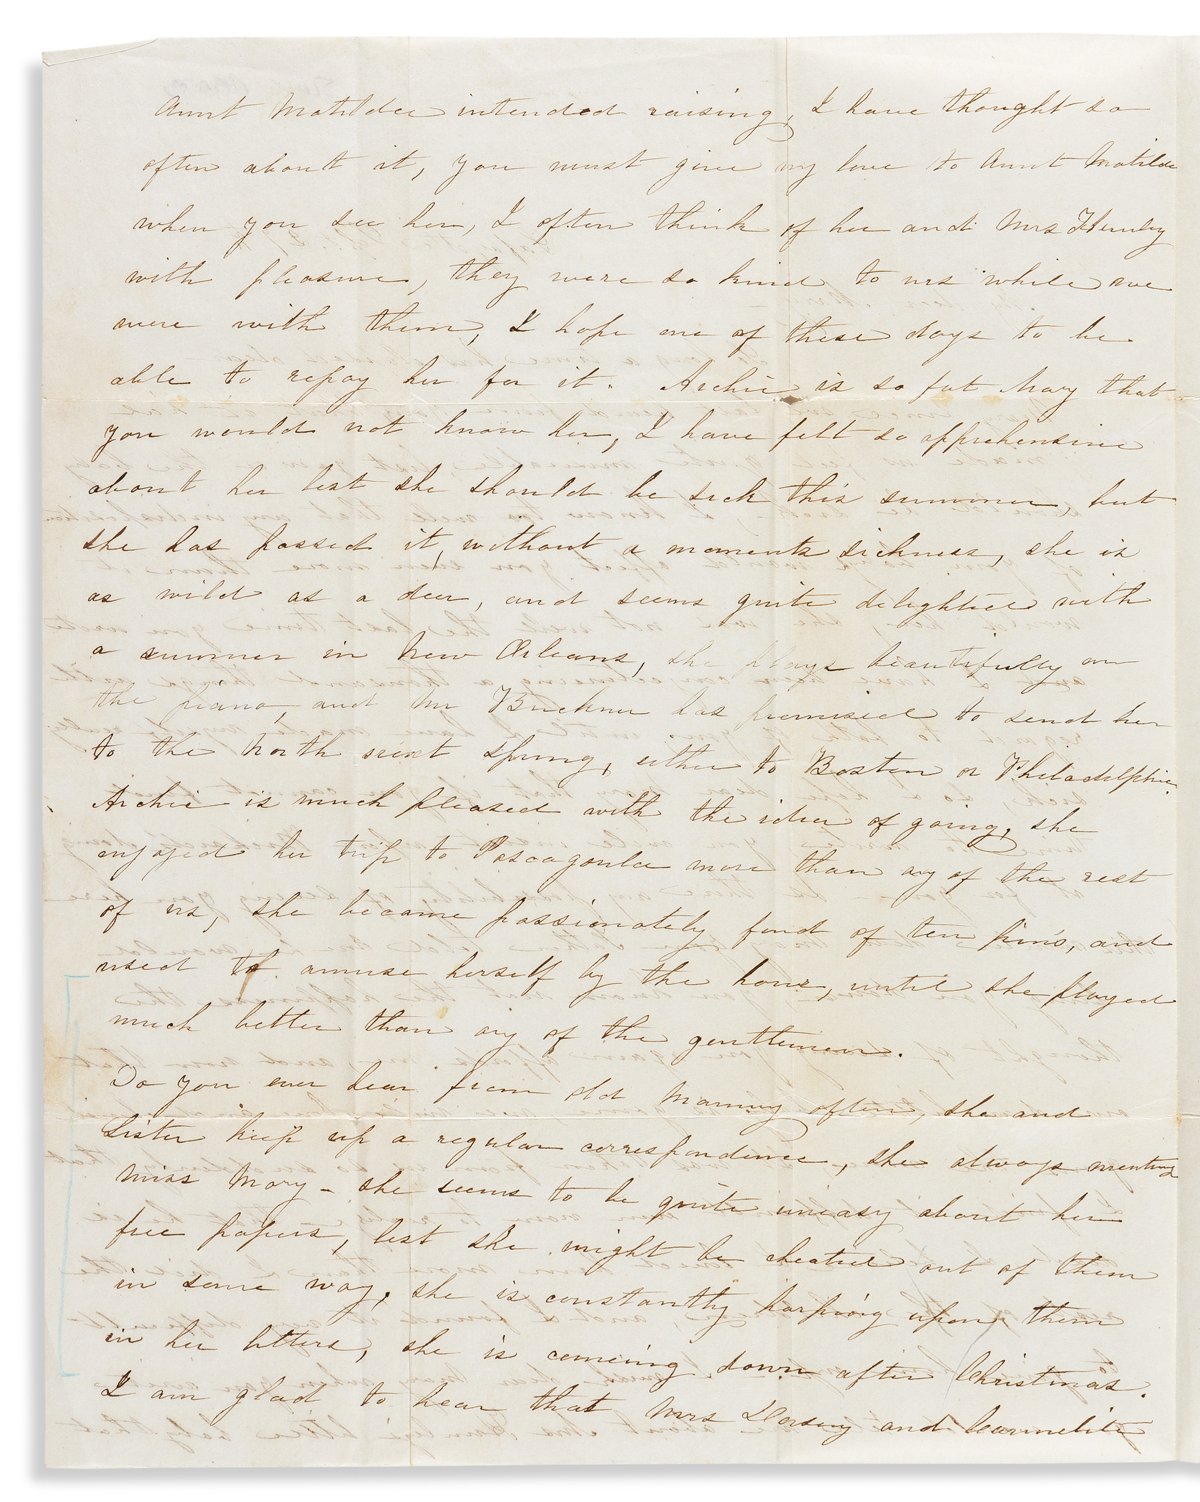 (SLAVERY AND ABOLITION.) Letter discussing a manumitted servant who is quite uneasy about her free papers.